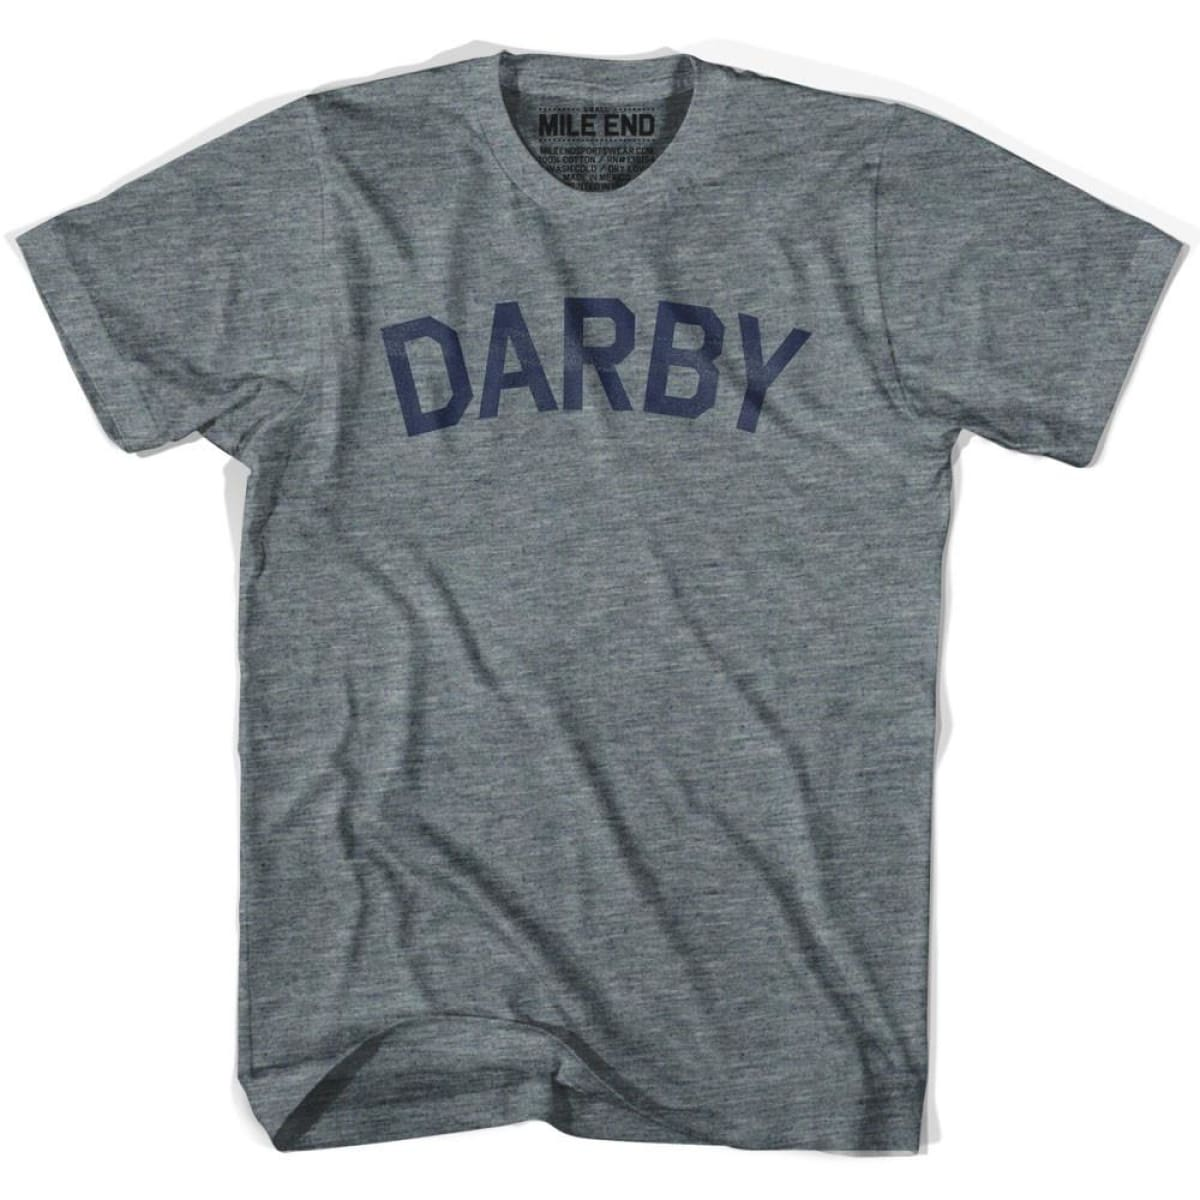 Darby City Vintage T-shirt - Athletic Grey / Adult X-Small - Mile End City